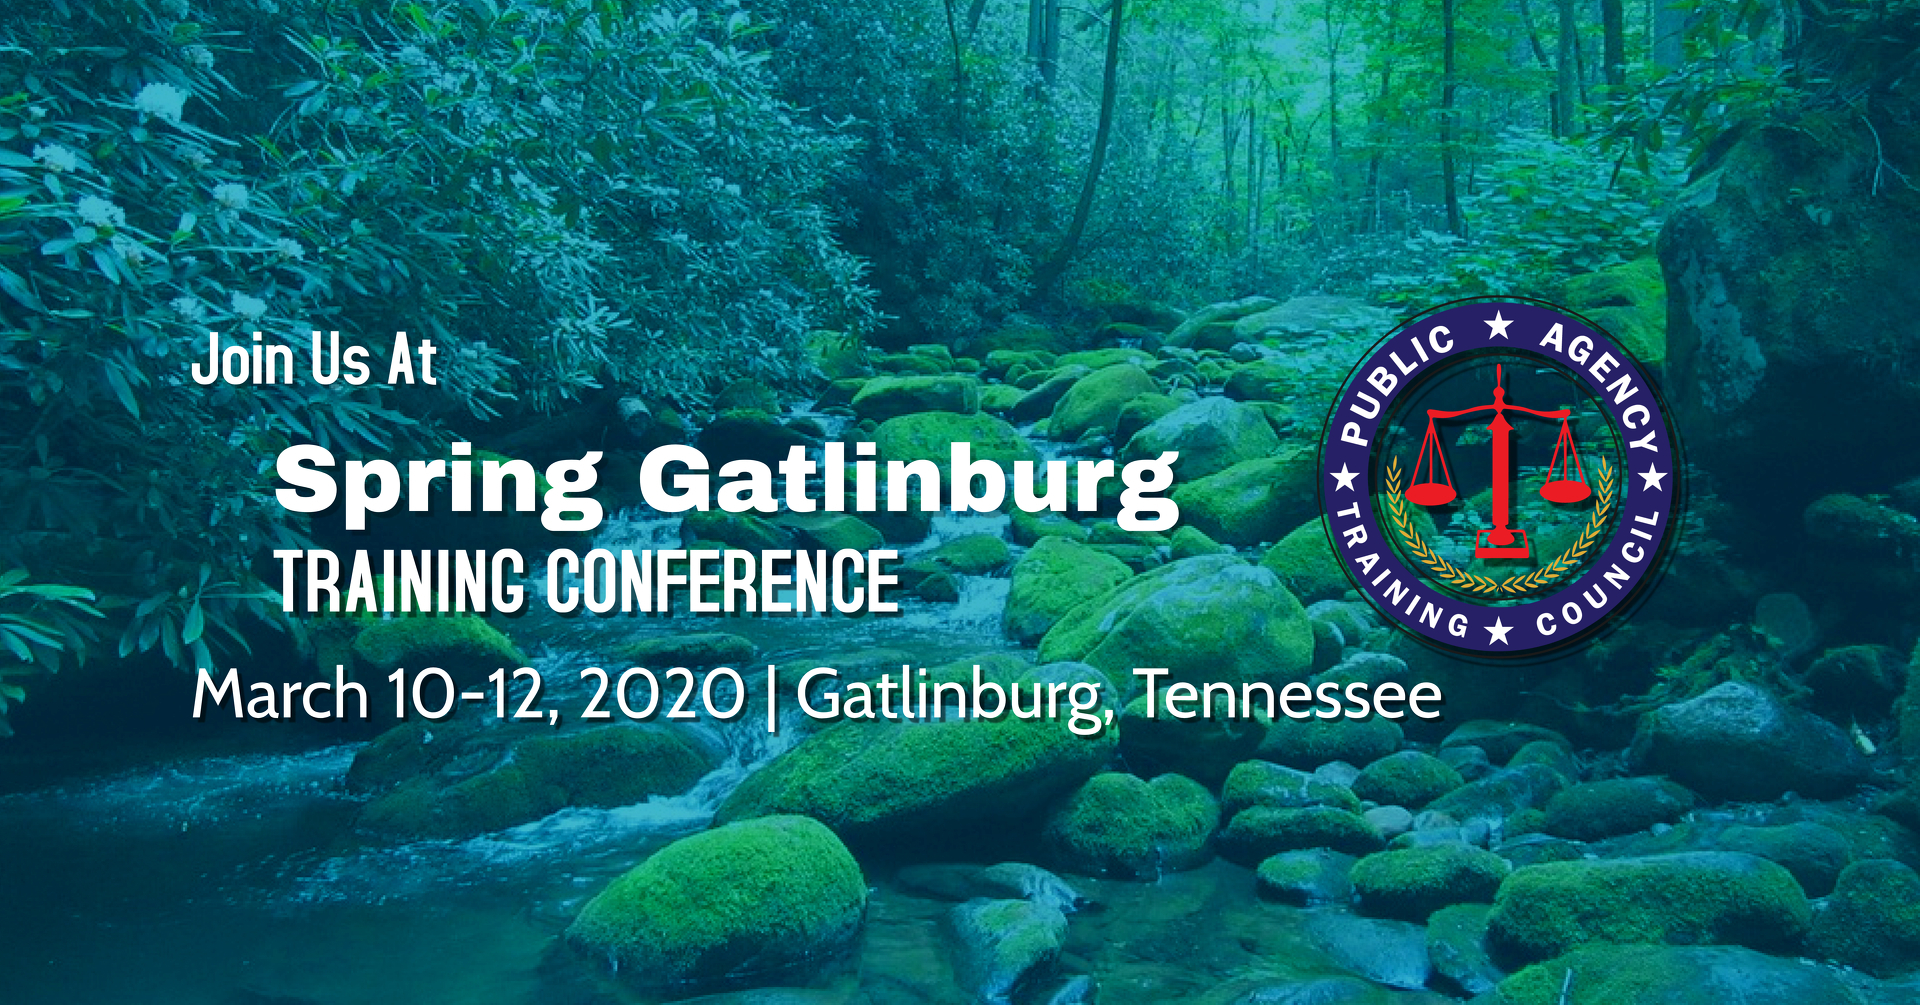 2019 Gatlinburg